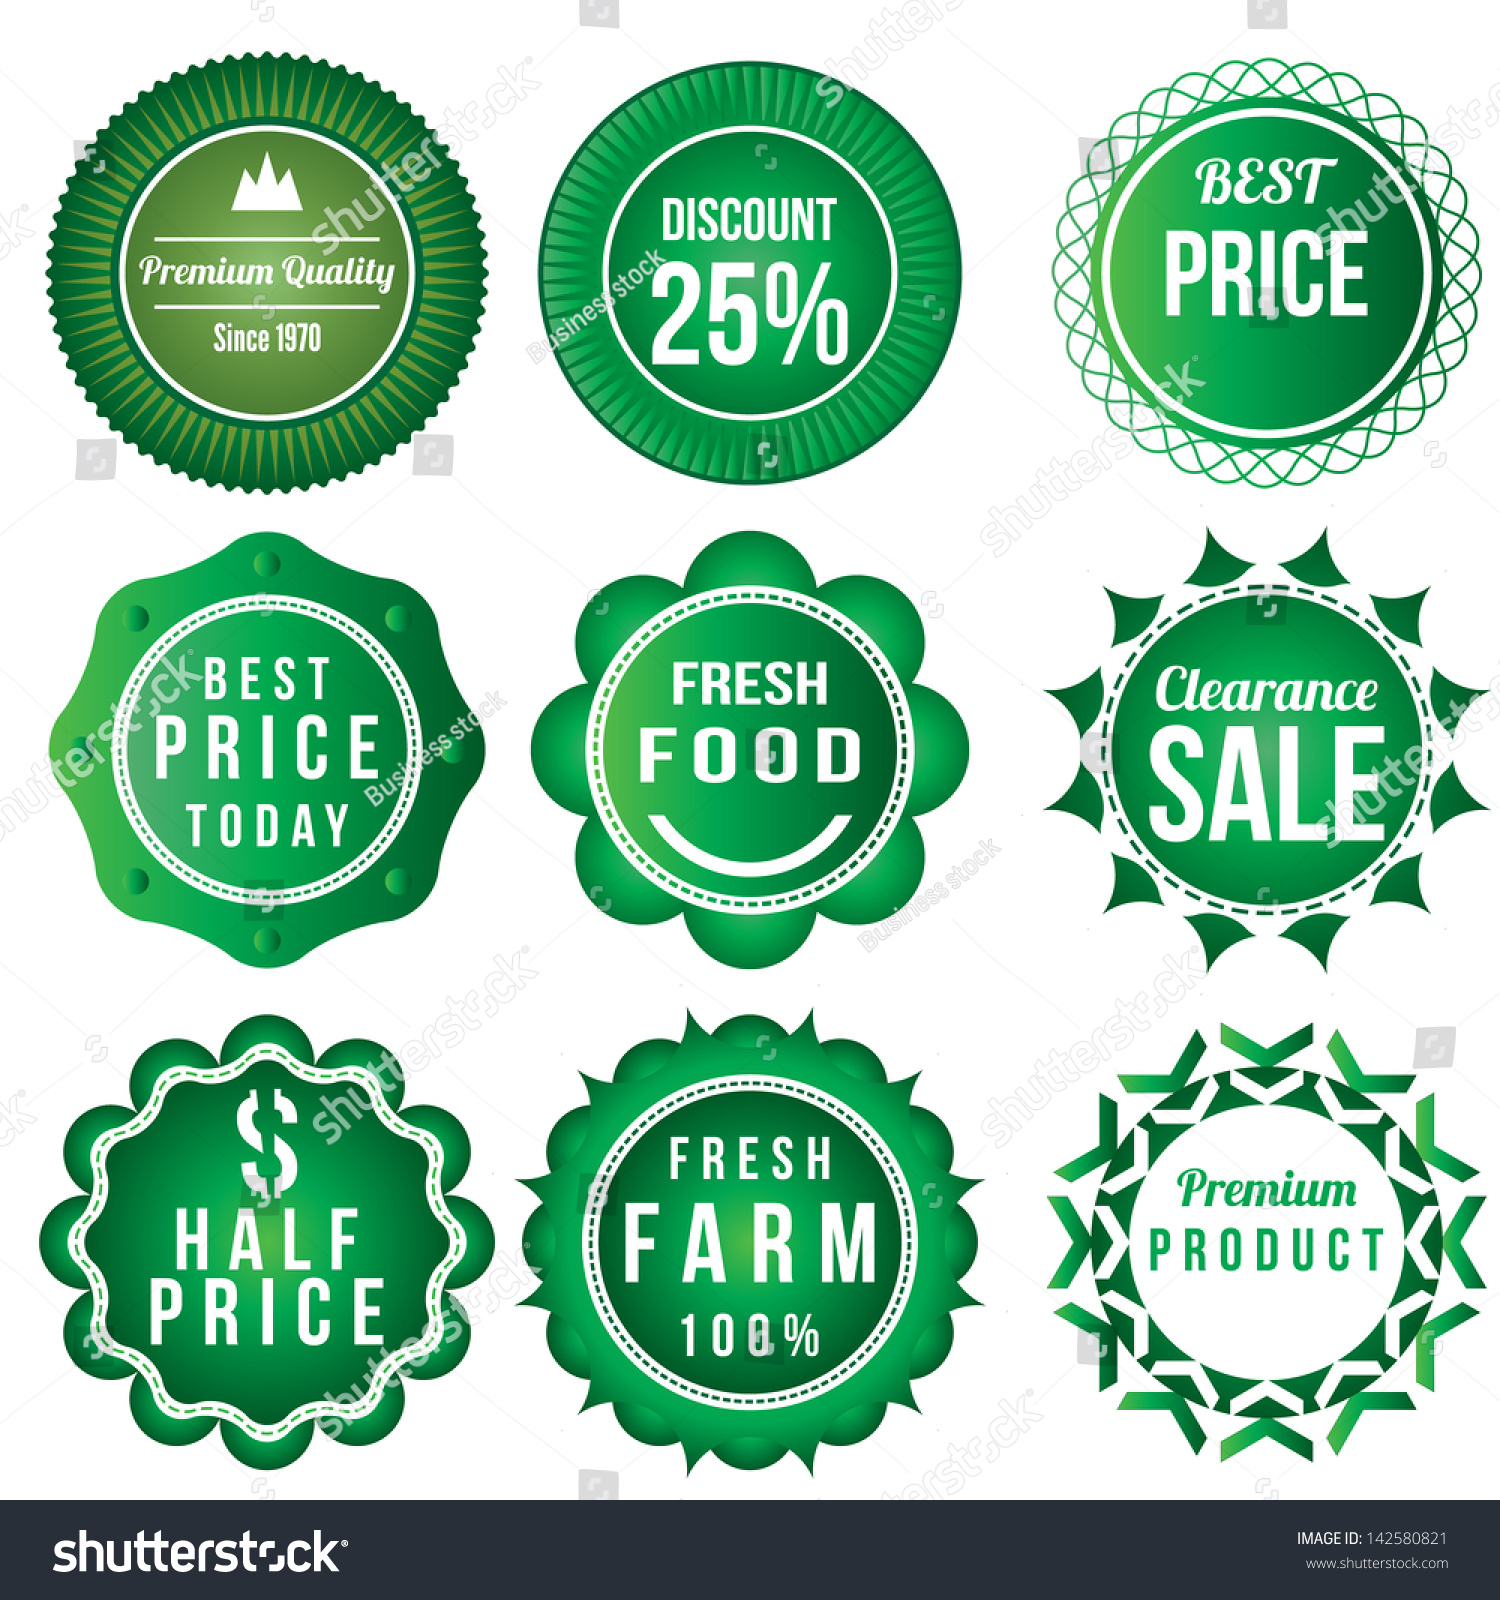 Fresh Food Product Vintage Labels Template Set Green Theme Retro – Product Label Template